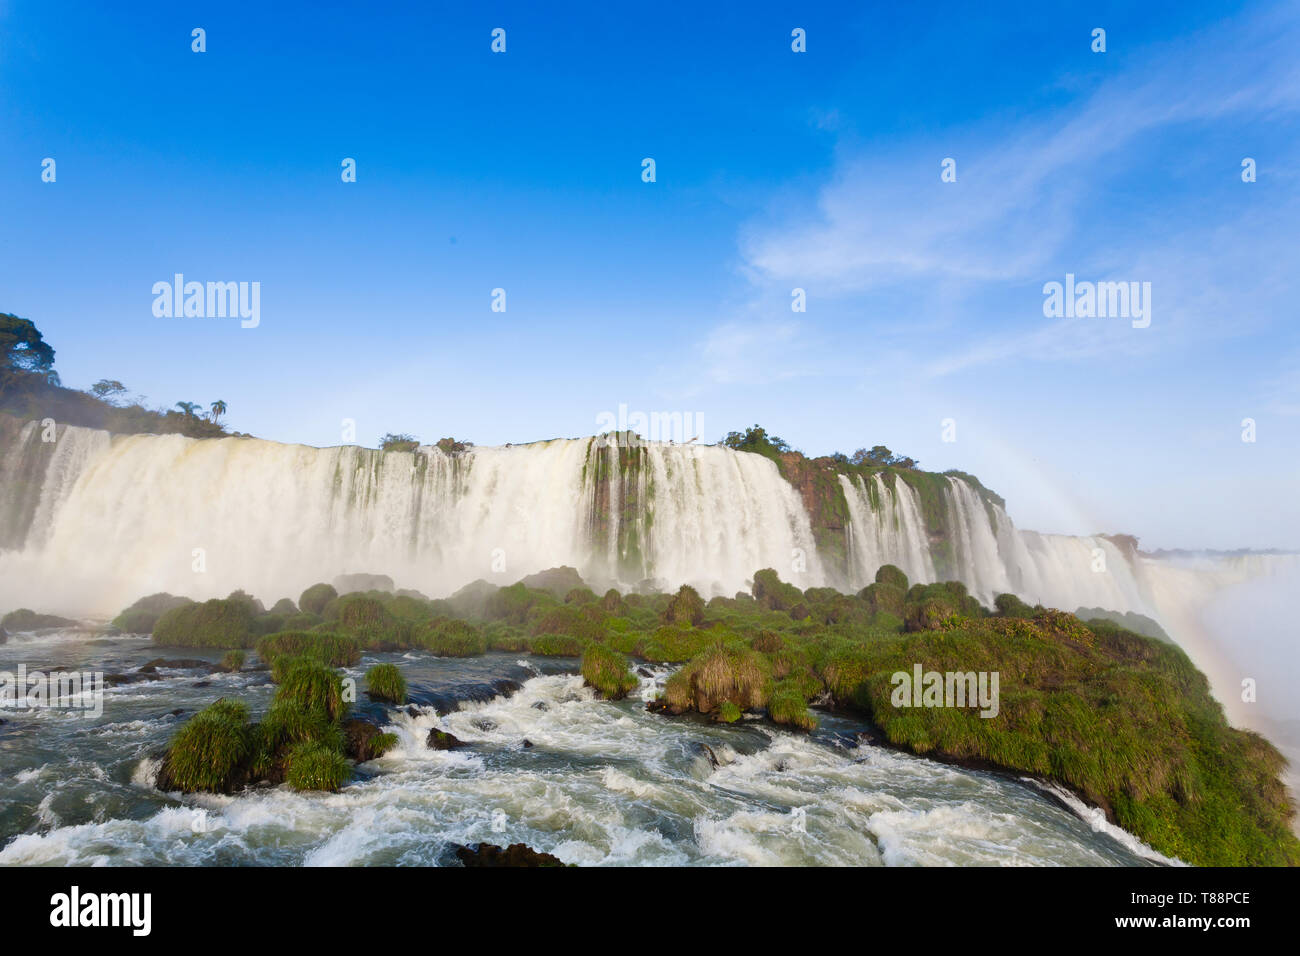 Landscape from Iguazu Falls National Park, Argentina. World heritage site. South America Adventure travel - Stock Image